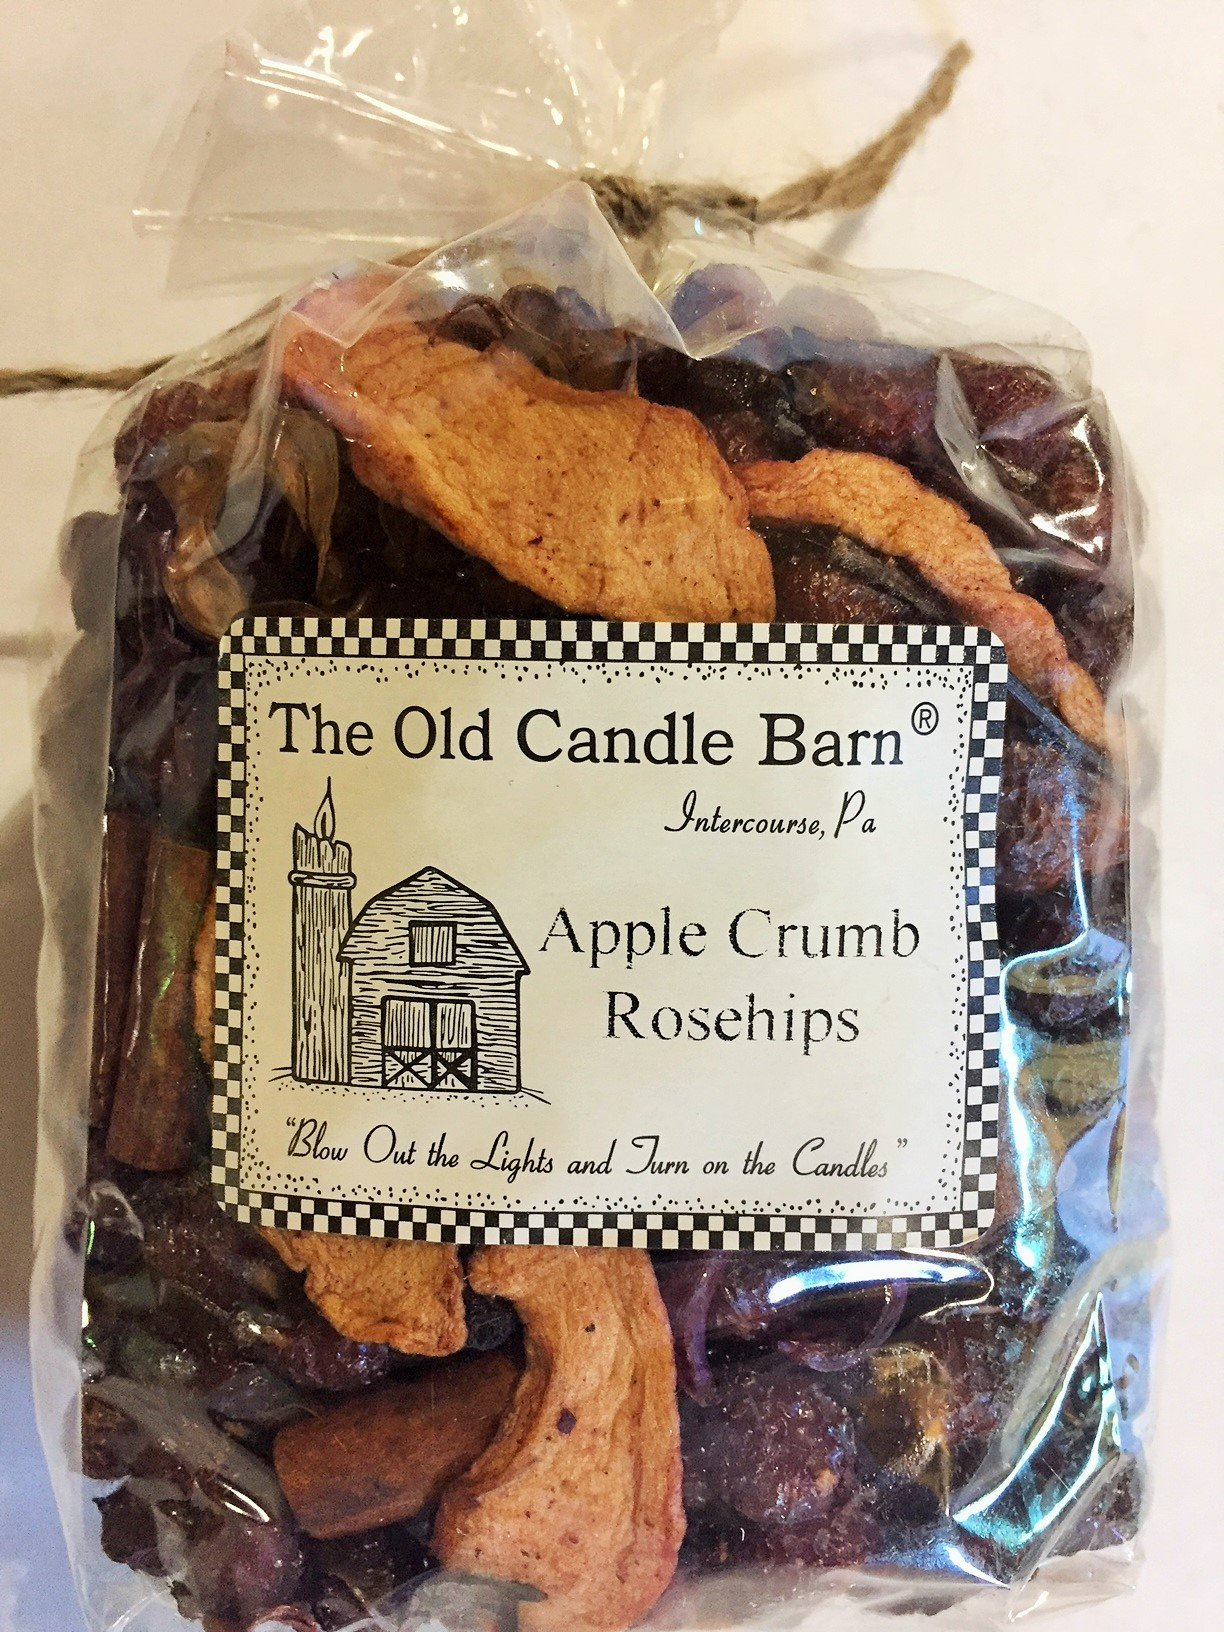 Old Candle Barn Apple Crumb Rosehips 4 Cup Bag - Well Scented Potpourri - Made in USA by Old Candle Barn (Image #1)